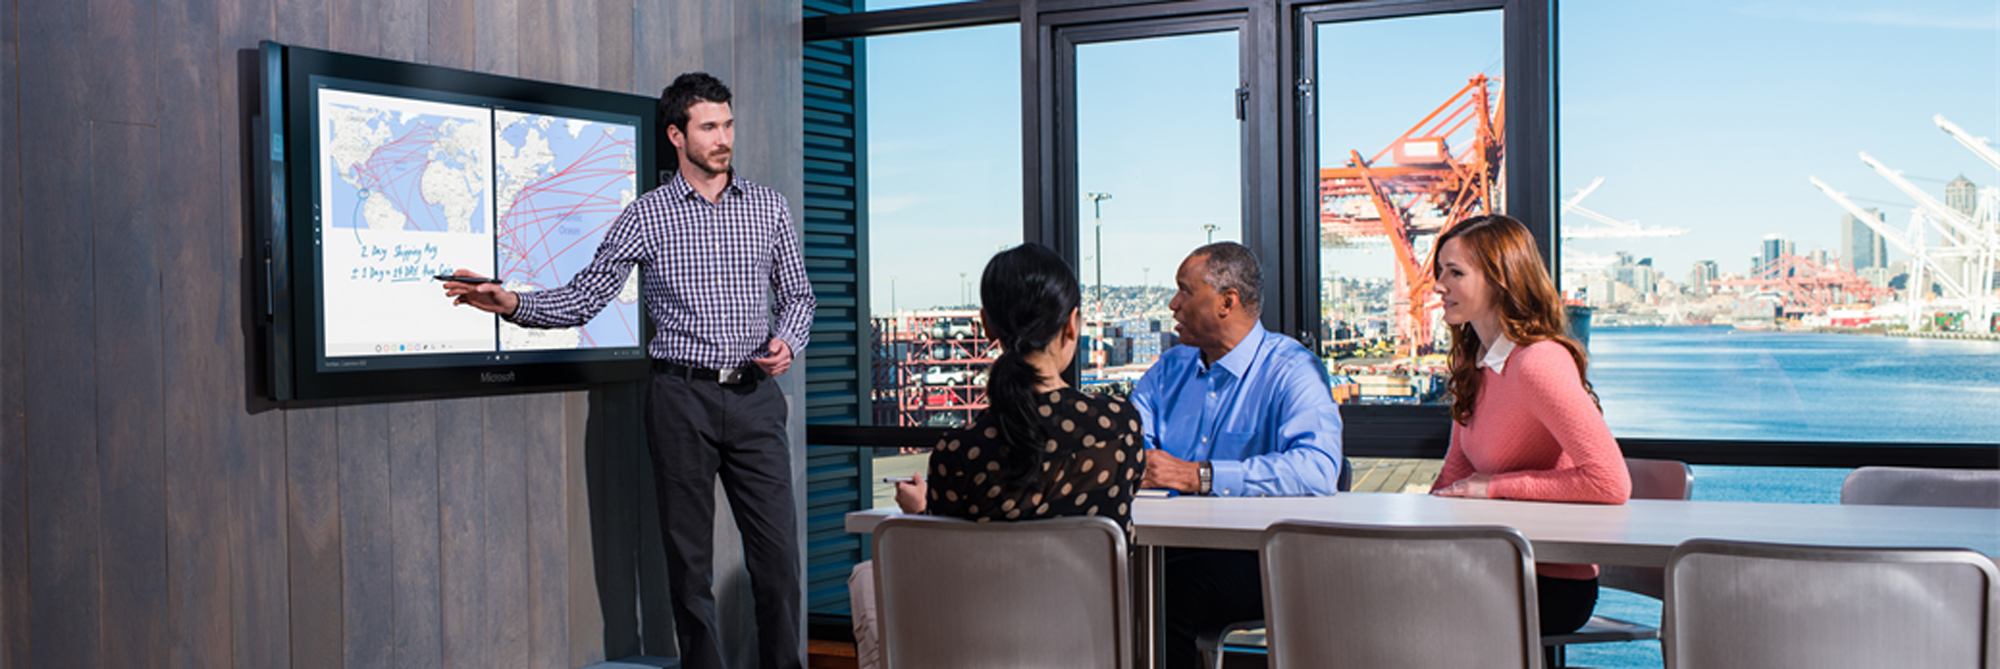 A designer and business manager discuss a new design on a Surface Hub